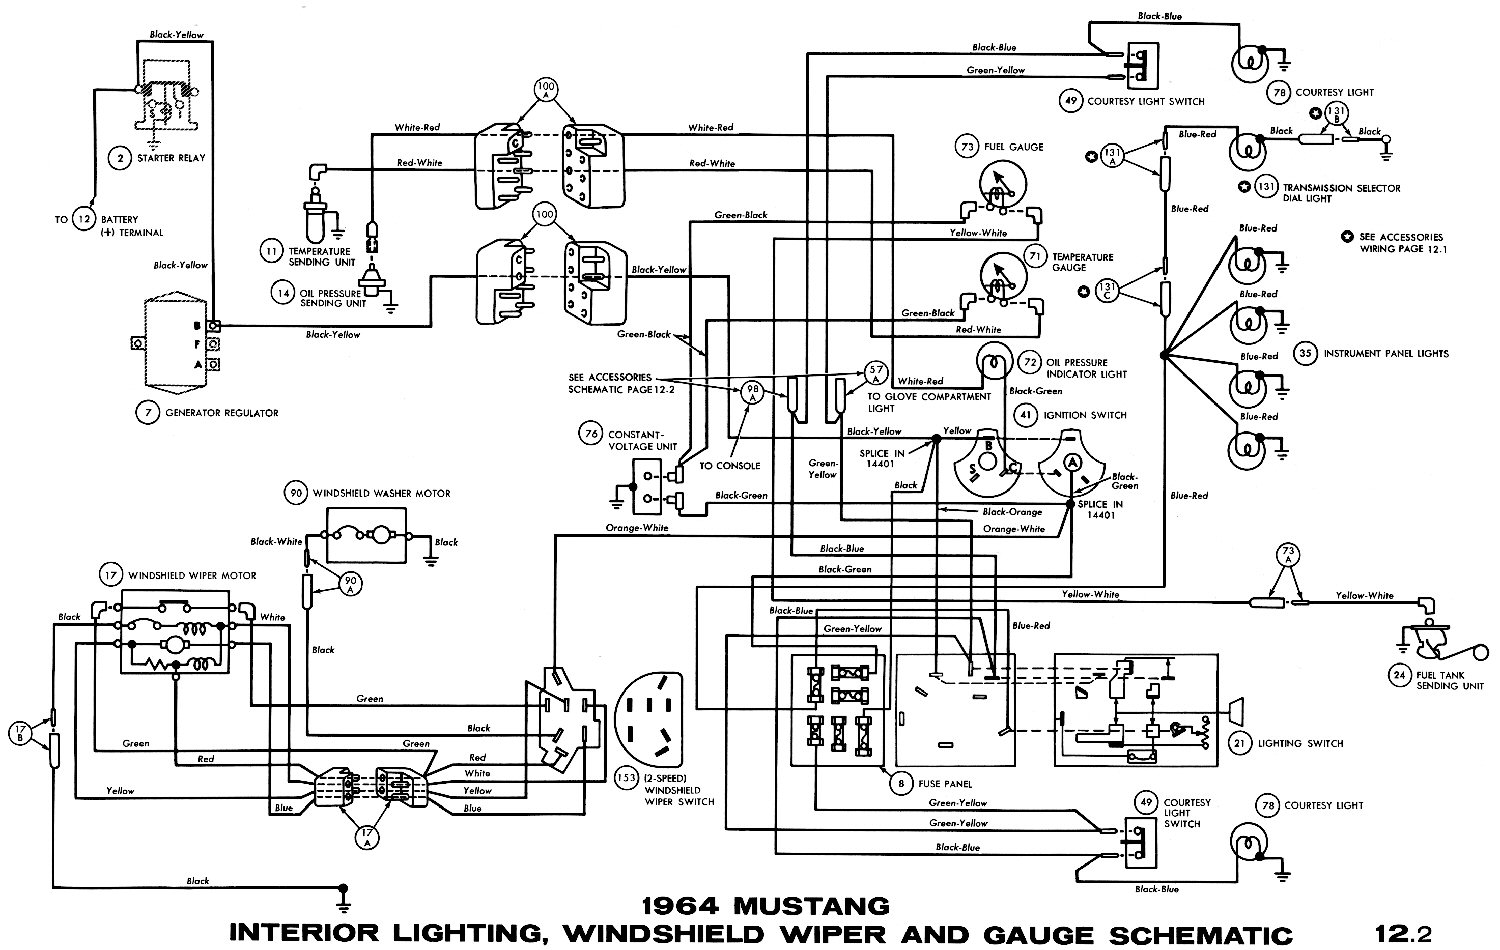 1964 Mustang Wiring Diagrams on dodge headlight switch wiring diagram